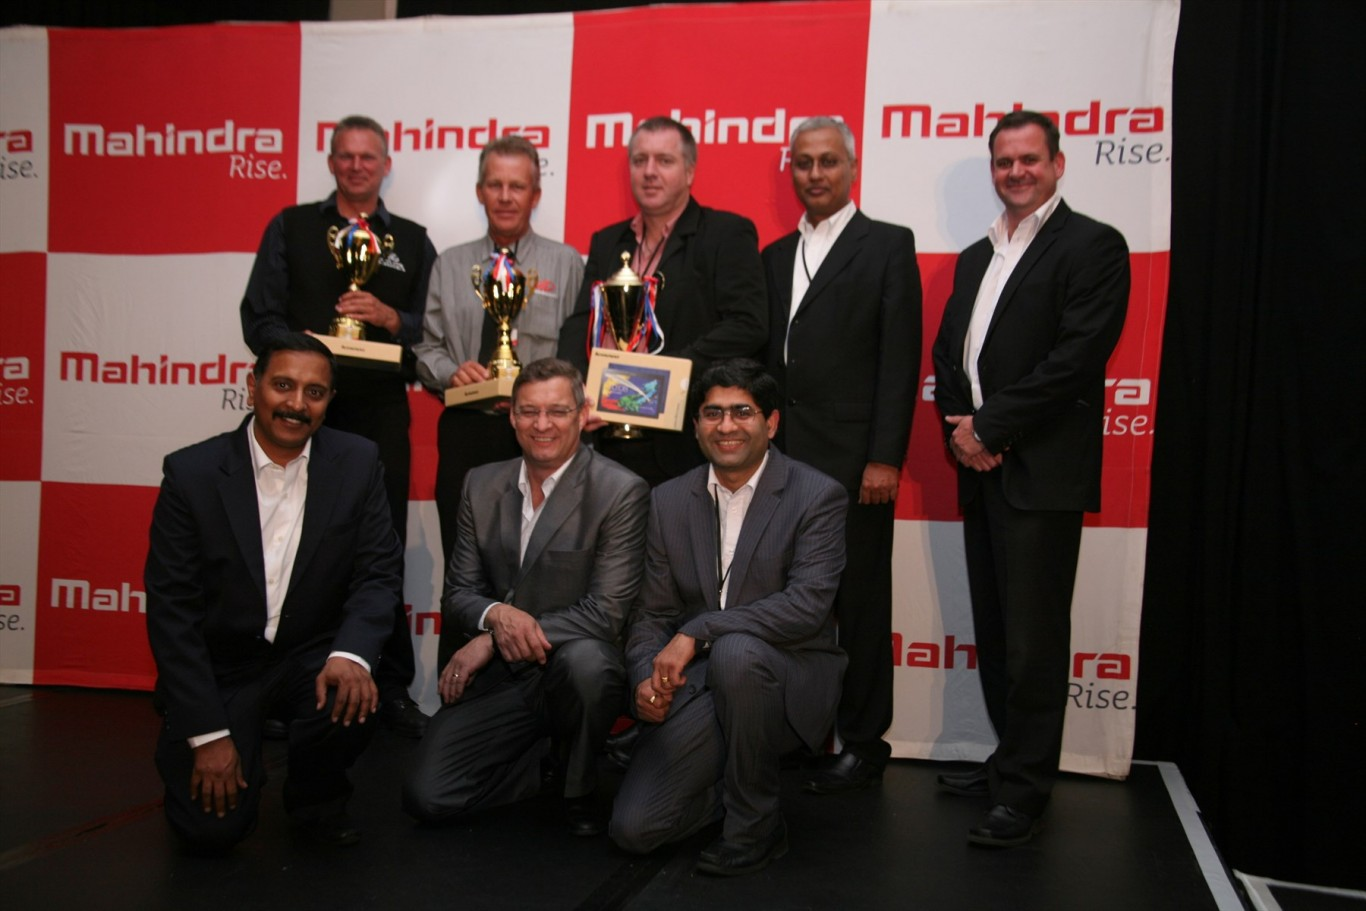 Back row from left  Carel Scholly, Dealer Principal from Mahindra Heidelberg  Andre Marx, Dealer Principal from Mahindra Vaal  Jaco Swart, Dealer Principal from Mahindra Bloemfontein  Sanjoy Gupta, Chief Executive Officer from Mahindra South Africa  Jacques Mellet, Logistics manager from Mahindra South Africa  Front row from left  Pavan Nair, Head of After Sales from Mahindra South Africa  Francois van Eeden, Head of Sales & Marketing from Mahindra South Africa  Avinash Bapat, Chief Financial Officer from Mahindra South Africa